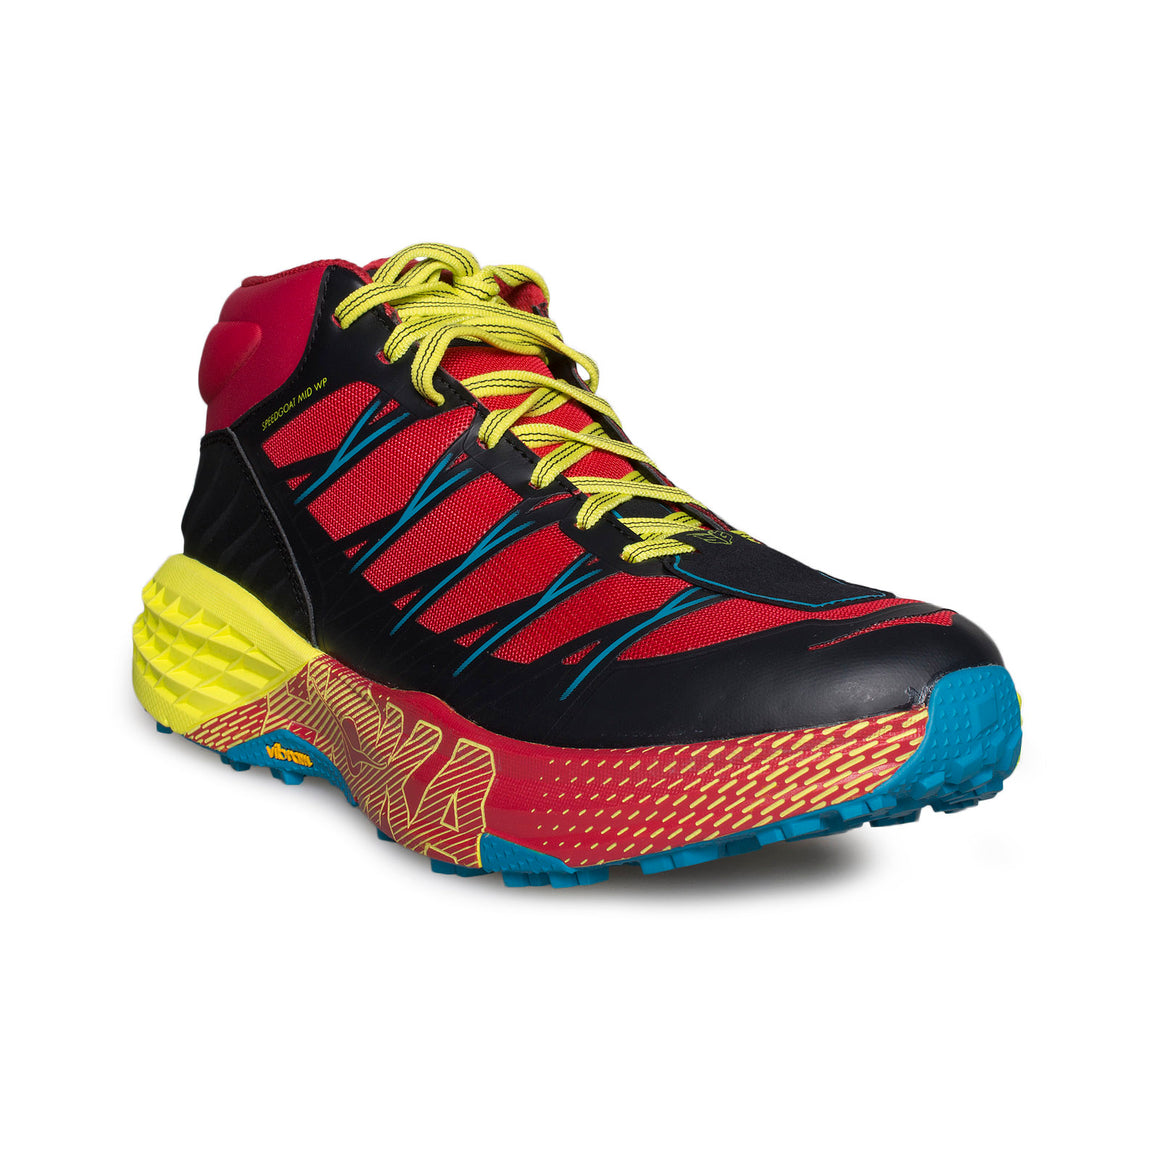 Hoka One One Speedgoat MID WP Chinese Red / Caribbean Sea Running Shoes - Men's